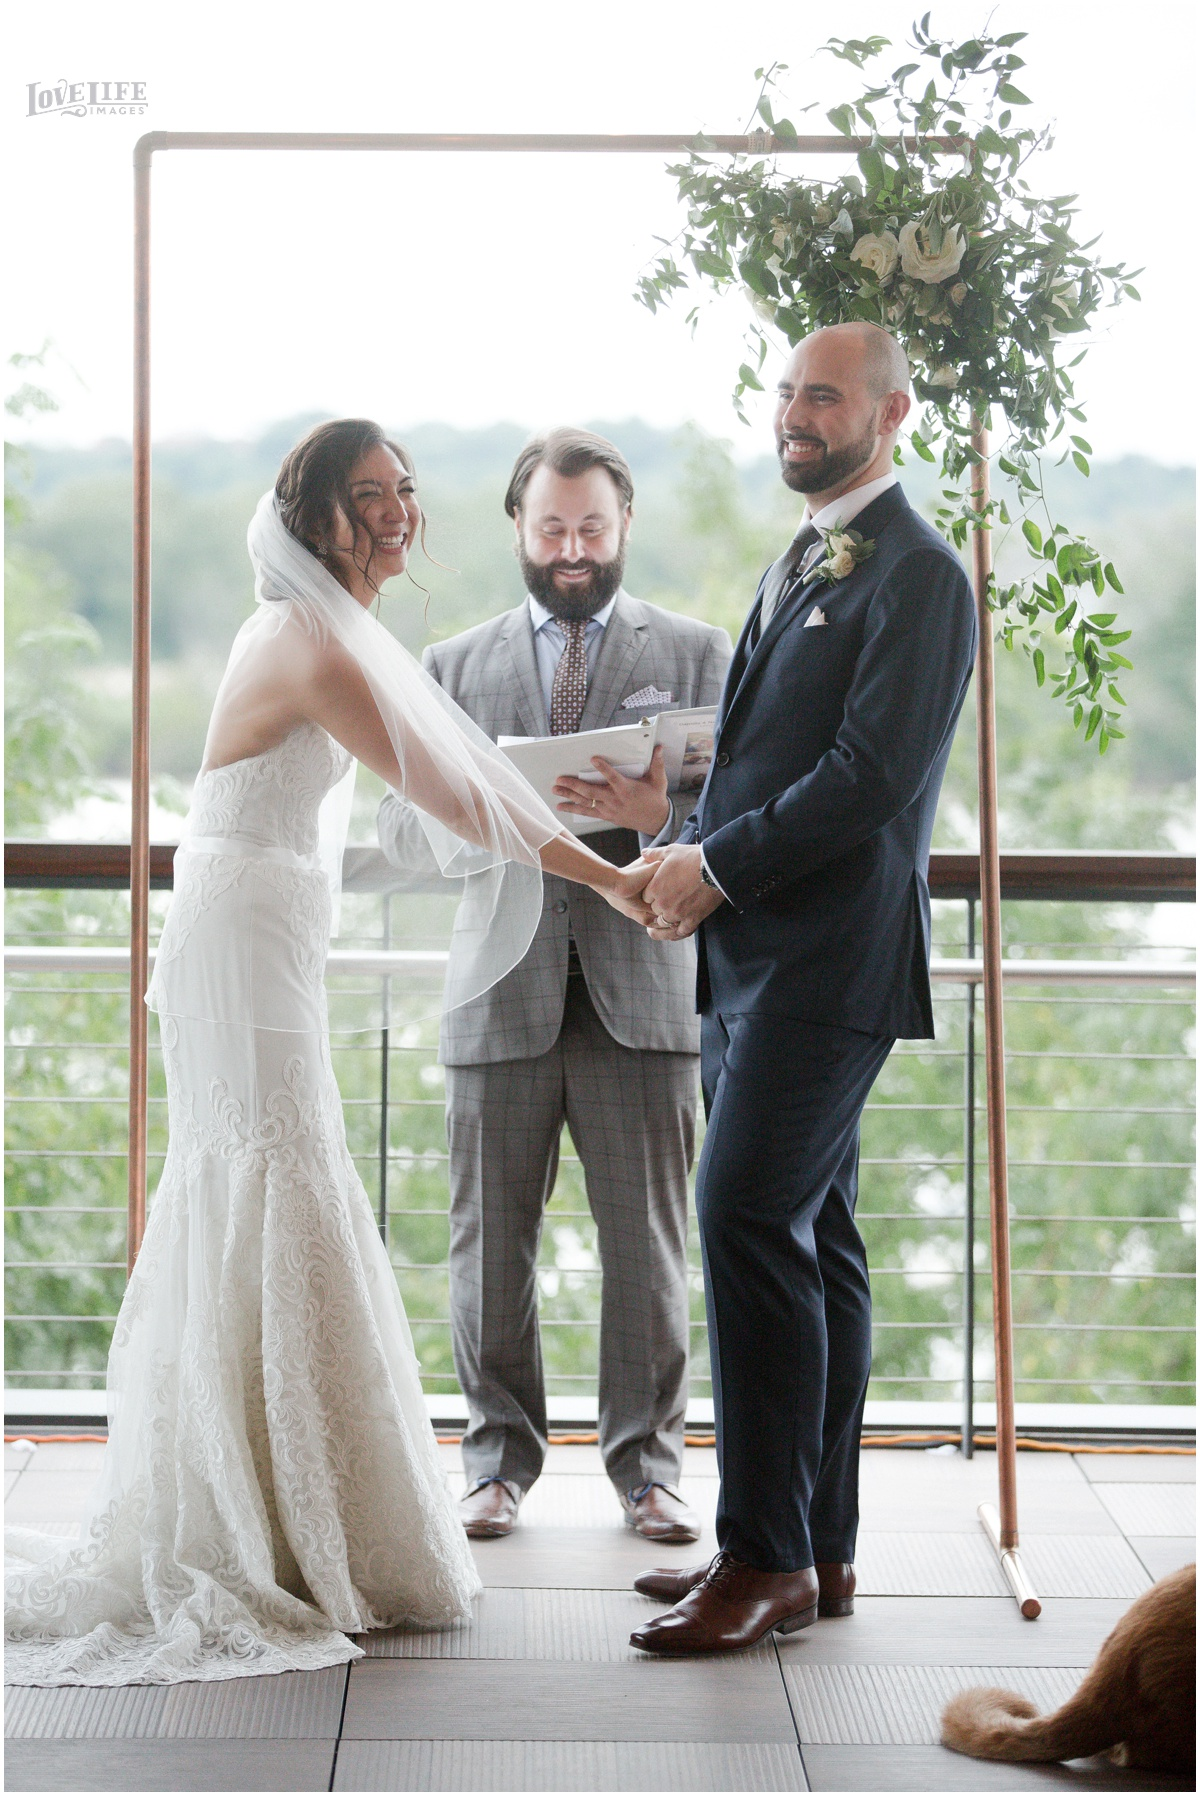 District Winery Fall DC wedding ceremony bride groom laughing.JPG